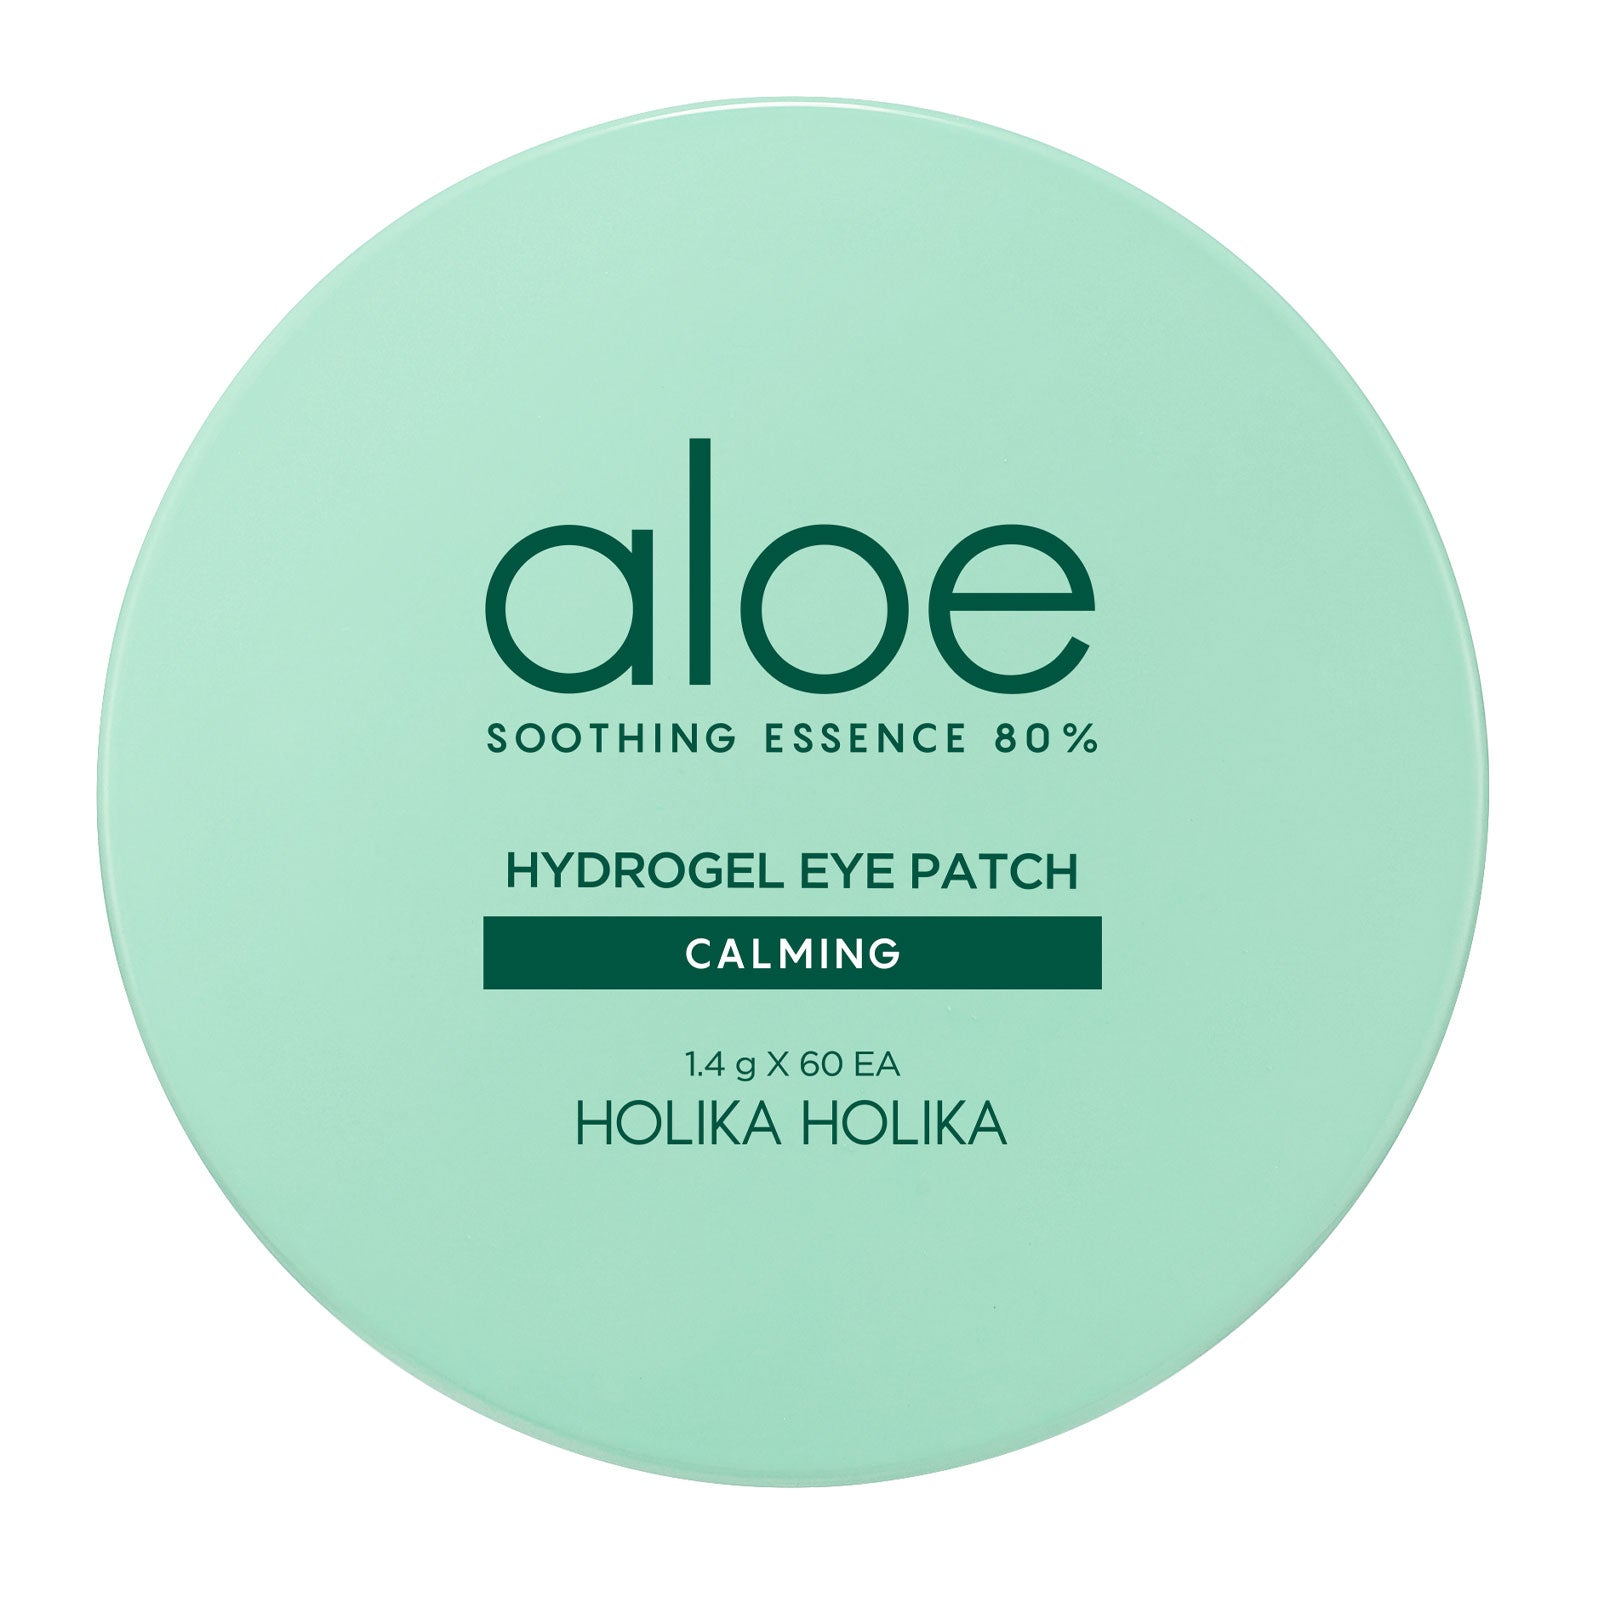 Holika Holika Aloe Soothing Essence 80% Hydrogel Eye Patch x 60